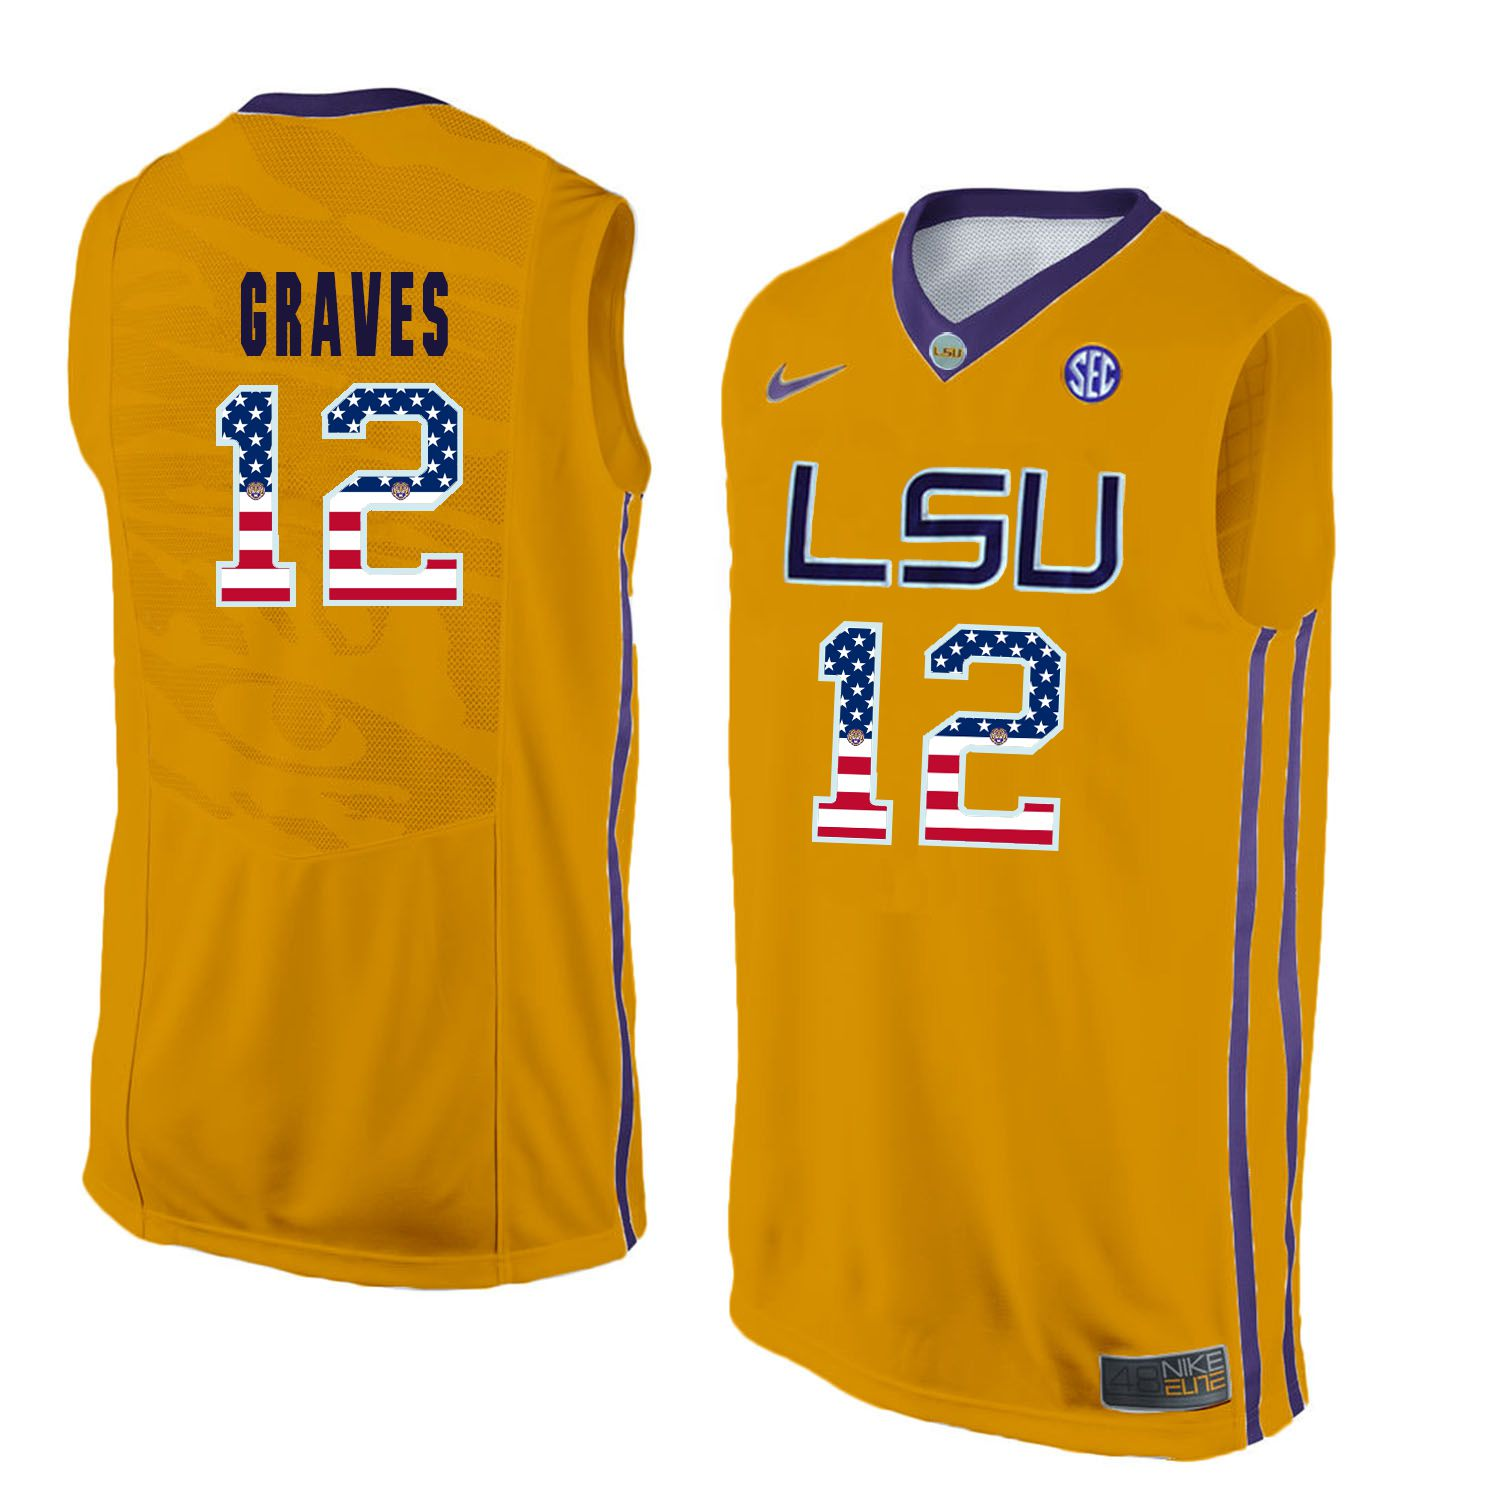 Men LSU Tigers 12 Graves Yellow Flag Customized NCAA Jerseys